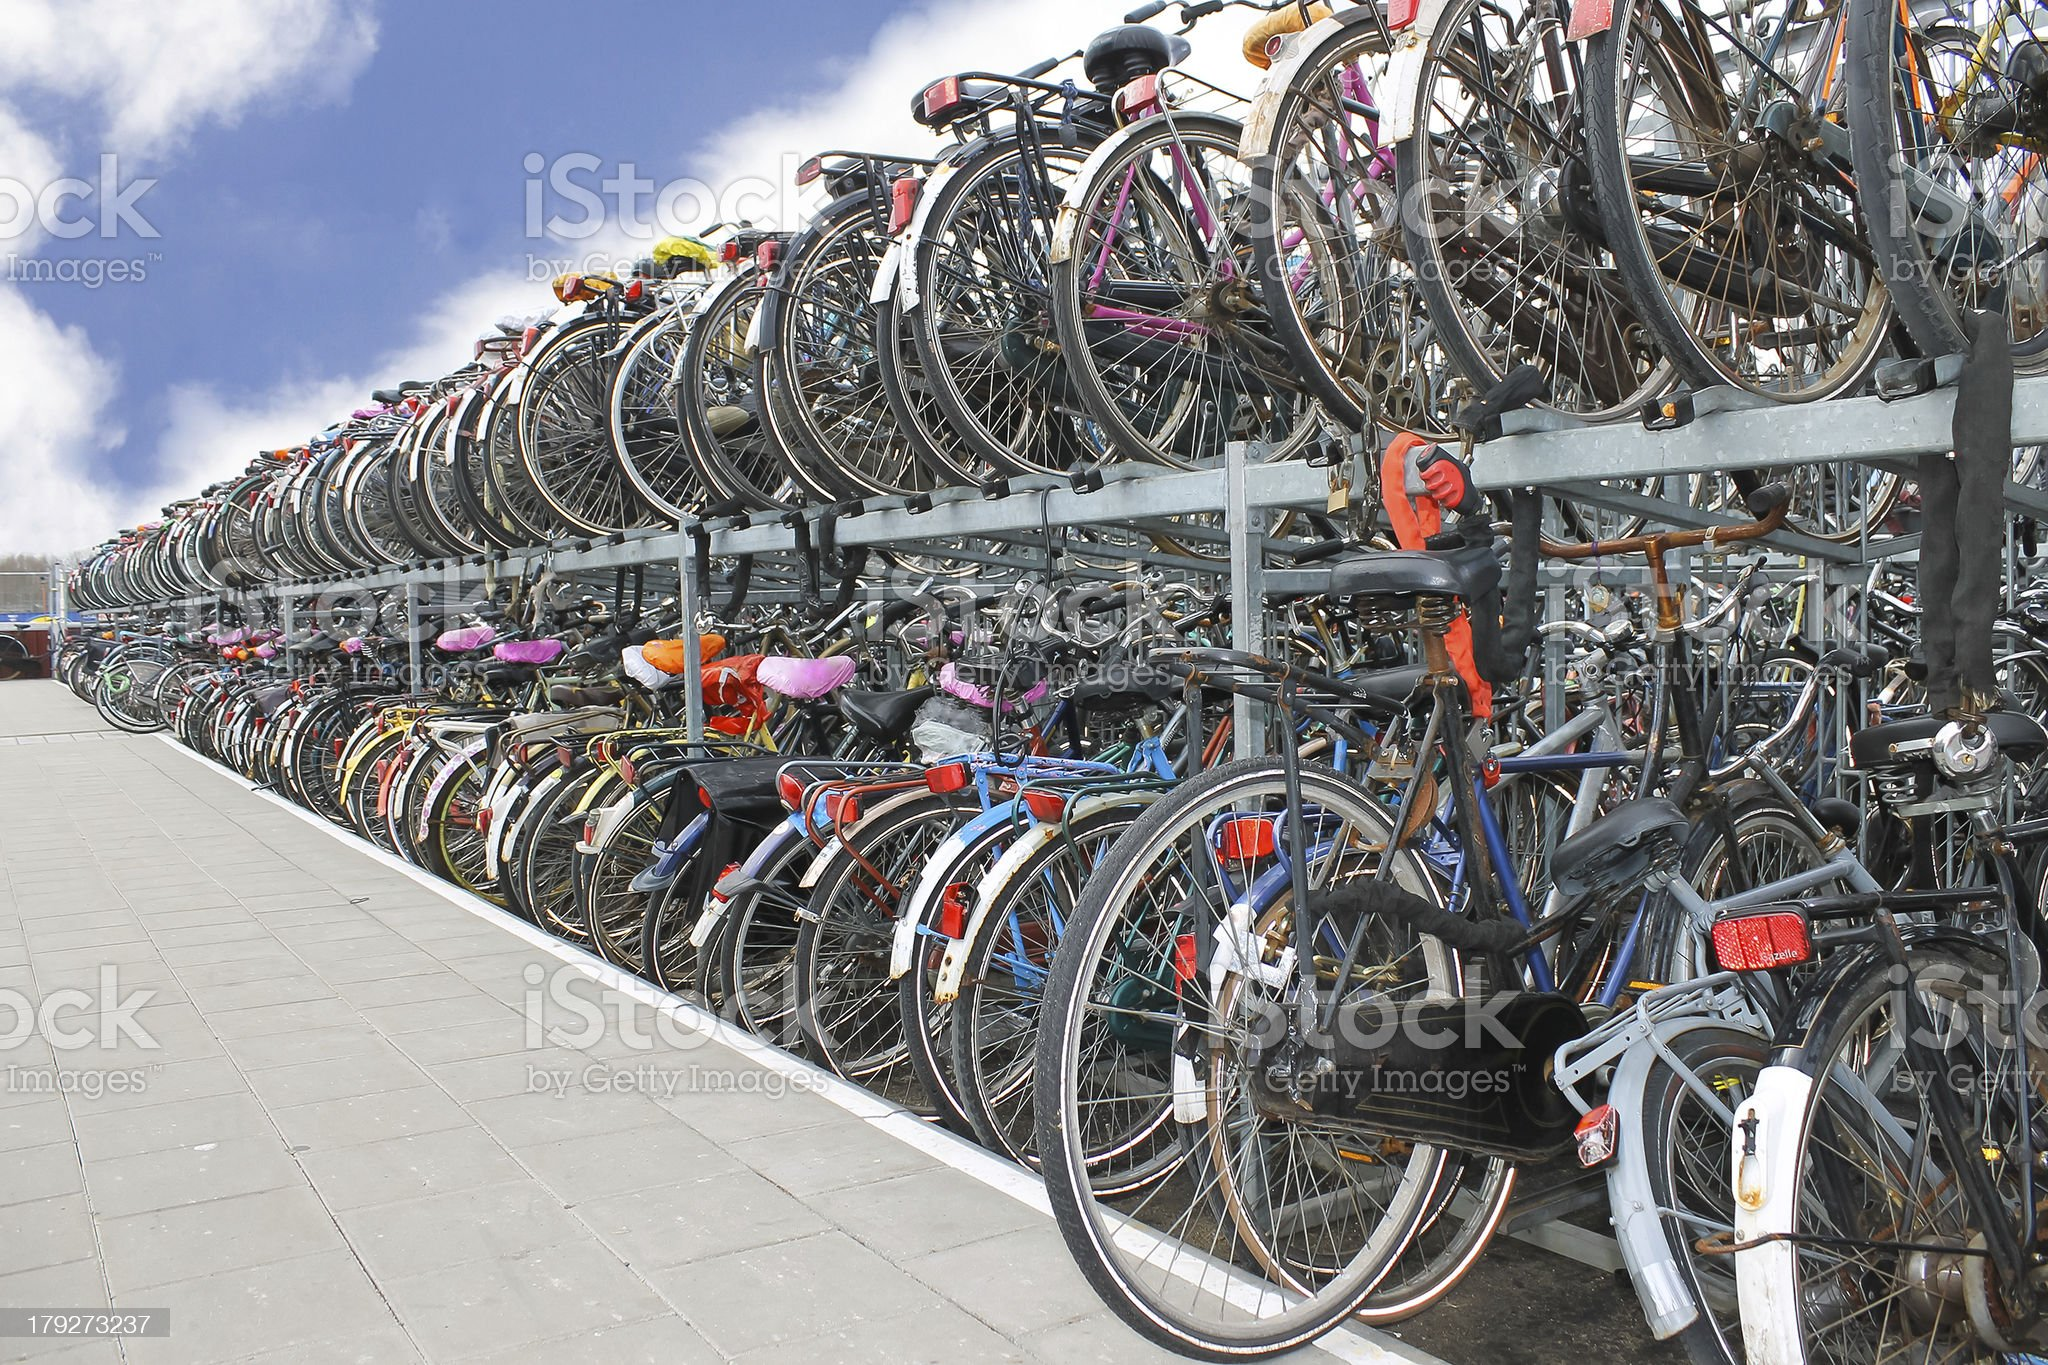 Plenty bicycles at parking lot in royalty-free stock photo